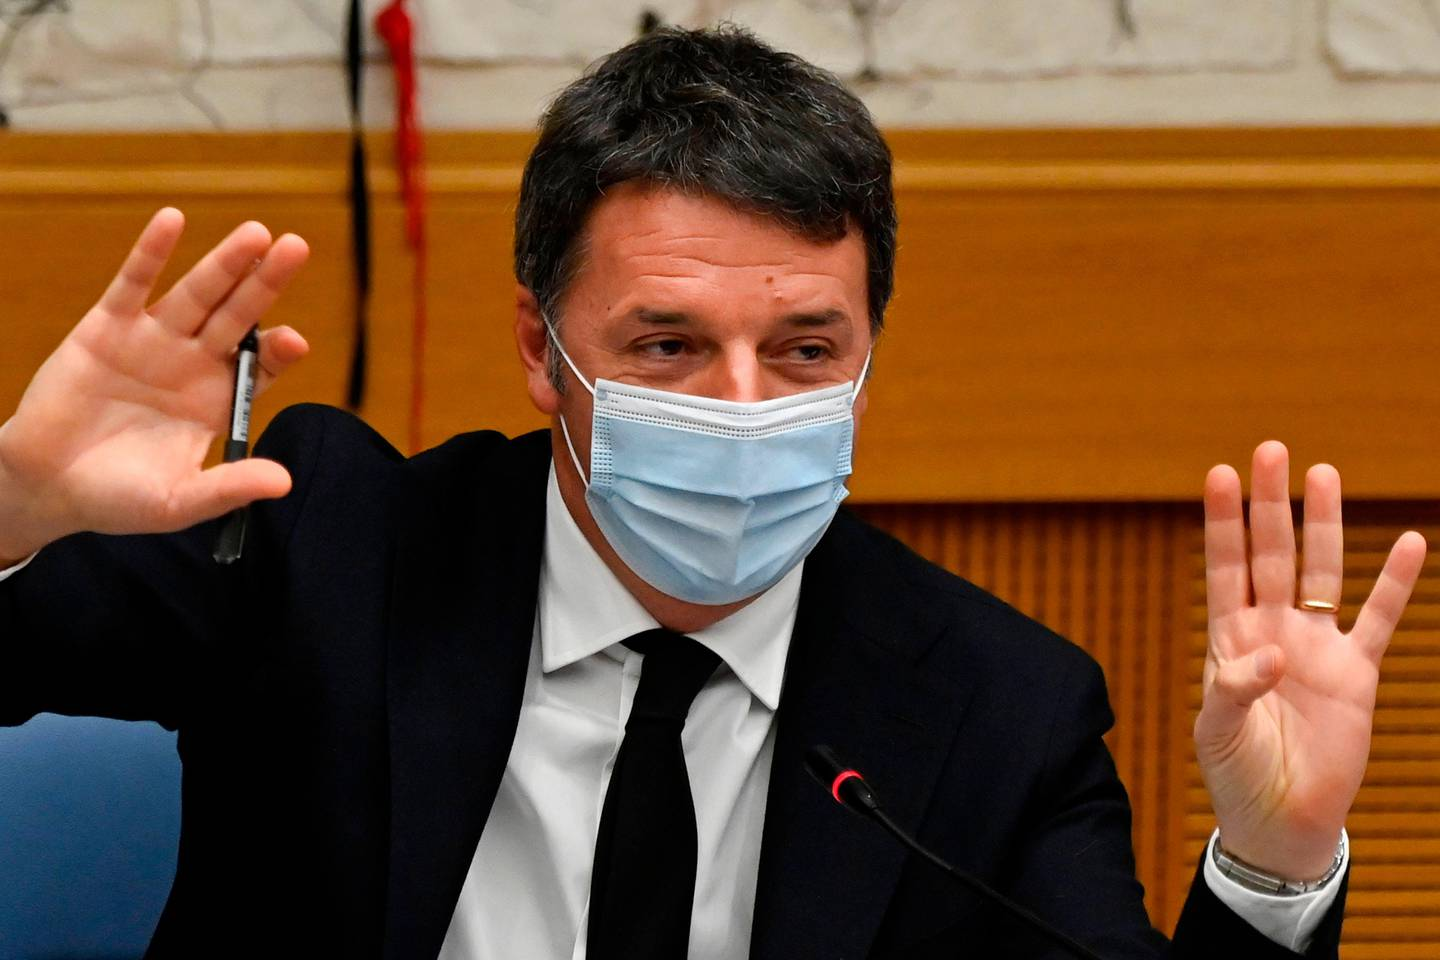 Italian current Senator, former premier and head of the political party 'Italia Viva' (IV), Matteo Renzi gestures as he holds a press conference on January 13, 2021 at the Italian Chamber of Deputies in Rome. - The Italian cabinet was in crisis on January 13, 2021 following the resignations of Teresa Bellanova and Elena Bonetti, members of former premier Matteo Renzi's Italia Viva party. (Photo by Alberto PIZZOLI / POOL / AFP)